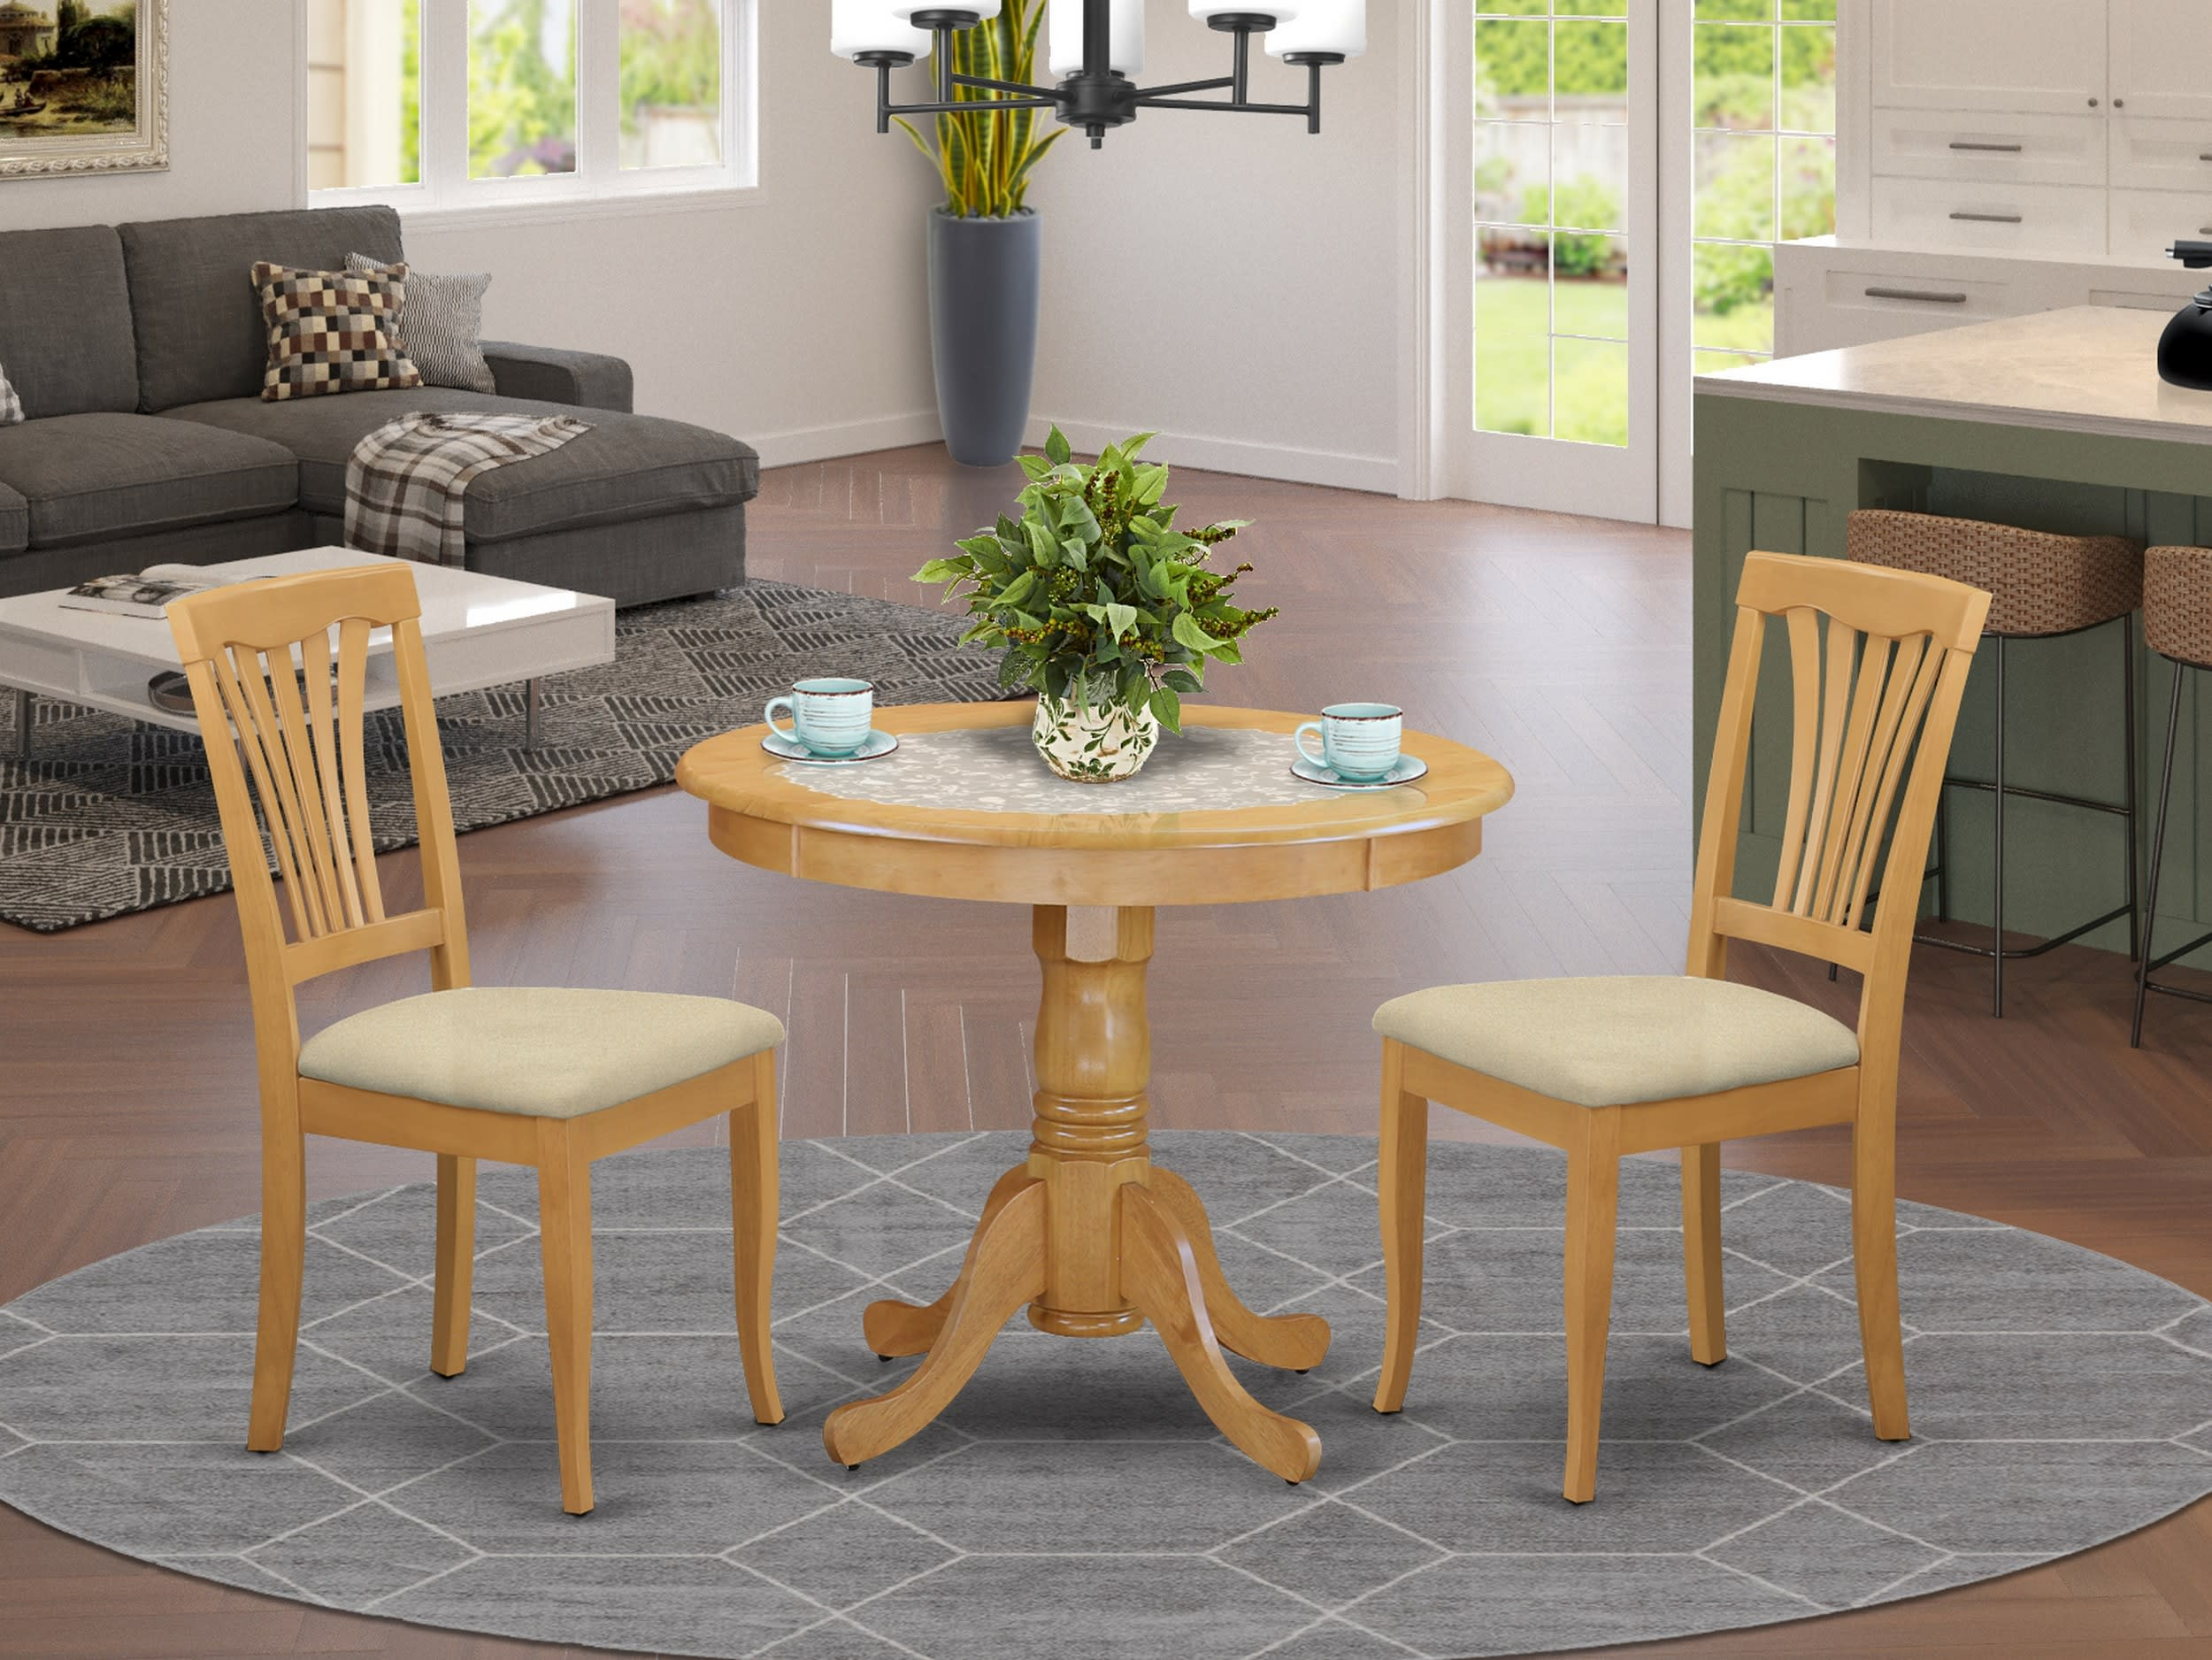 East West Furniture Antique 3 Piece Small Kitchen Table And Chairs Set Small Table And 2 Dining Room Chairs Anav3 Oak C Goedekers Com